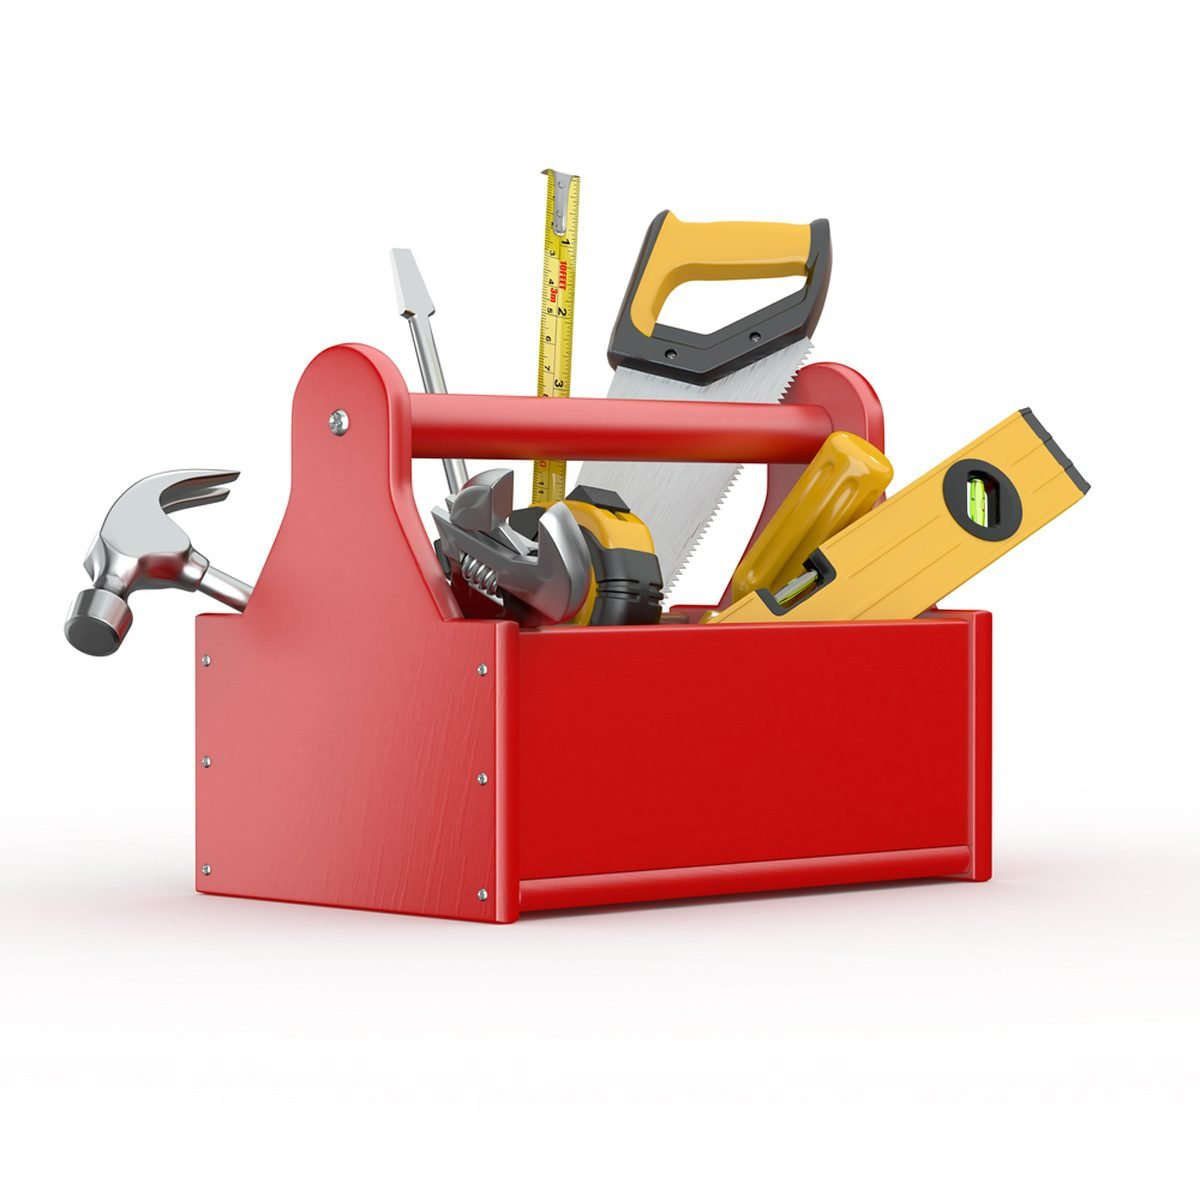 15 Must-Have Additions for a Homeowner Tool Kit Family